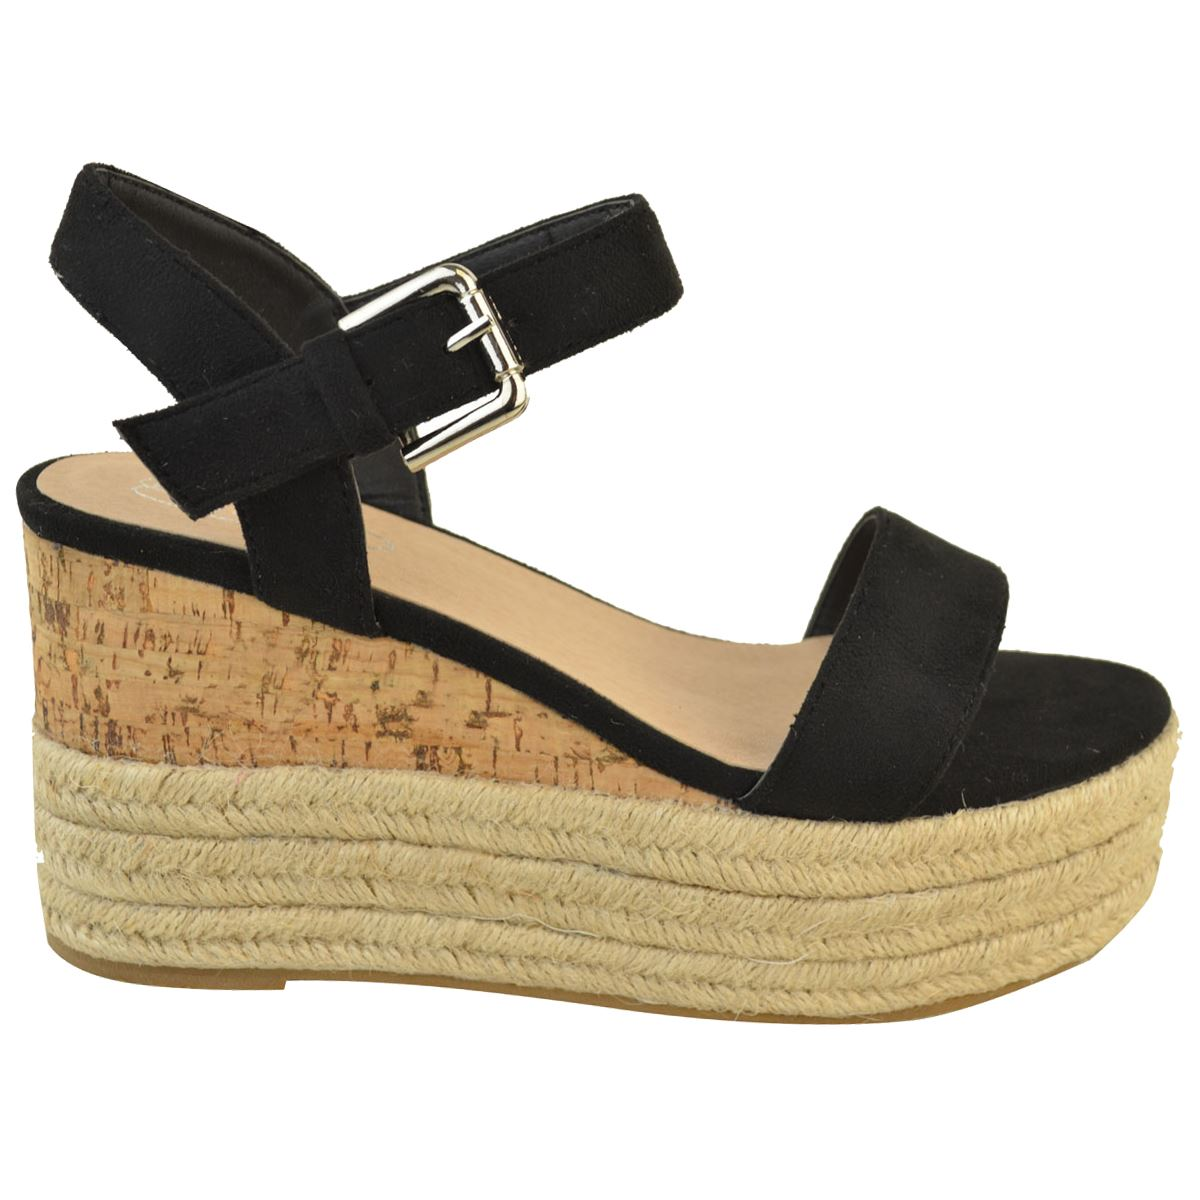 Womens-Ladies-Summer-Platform-Ankle-Strappy-Wedges-Open-Toe-Sandals-Shoes-Size thumbnail 3